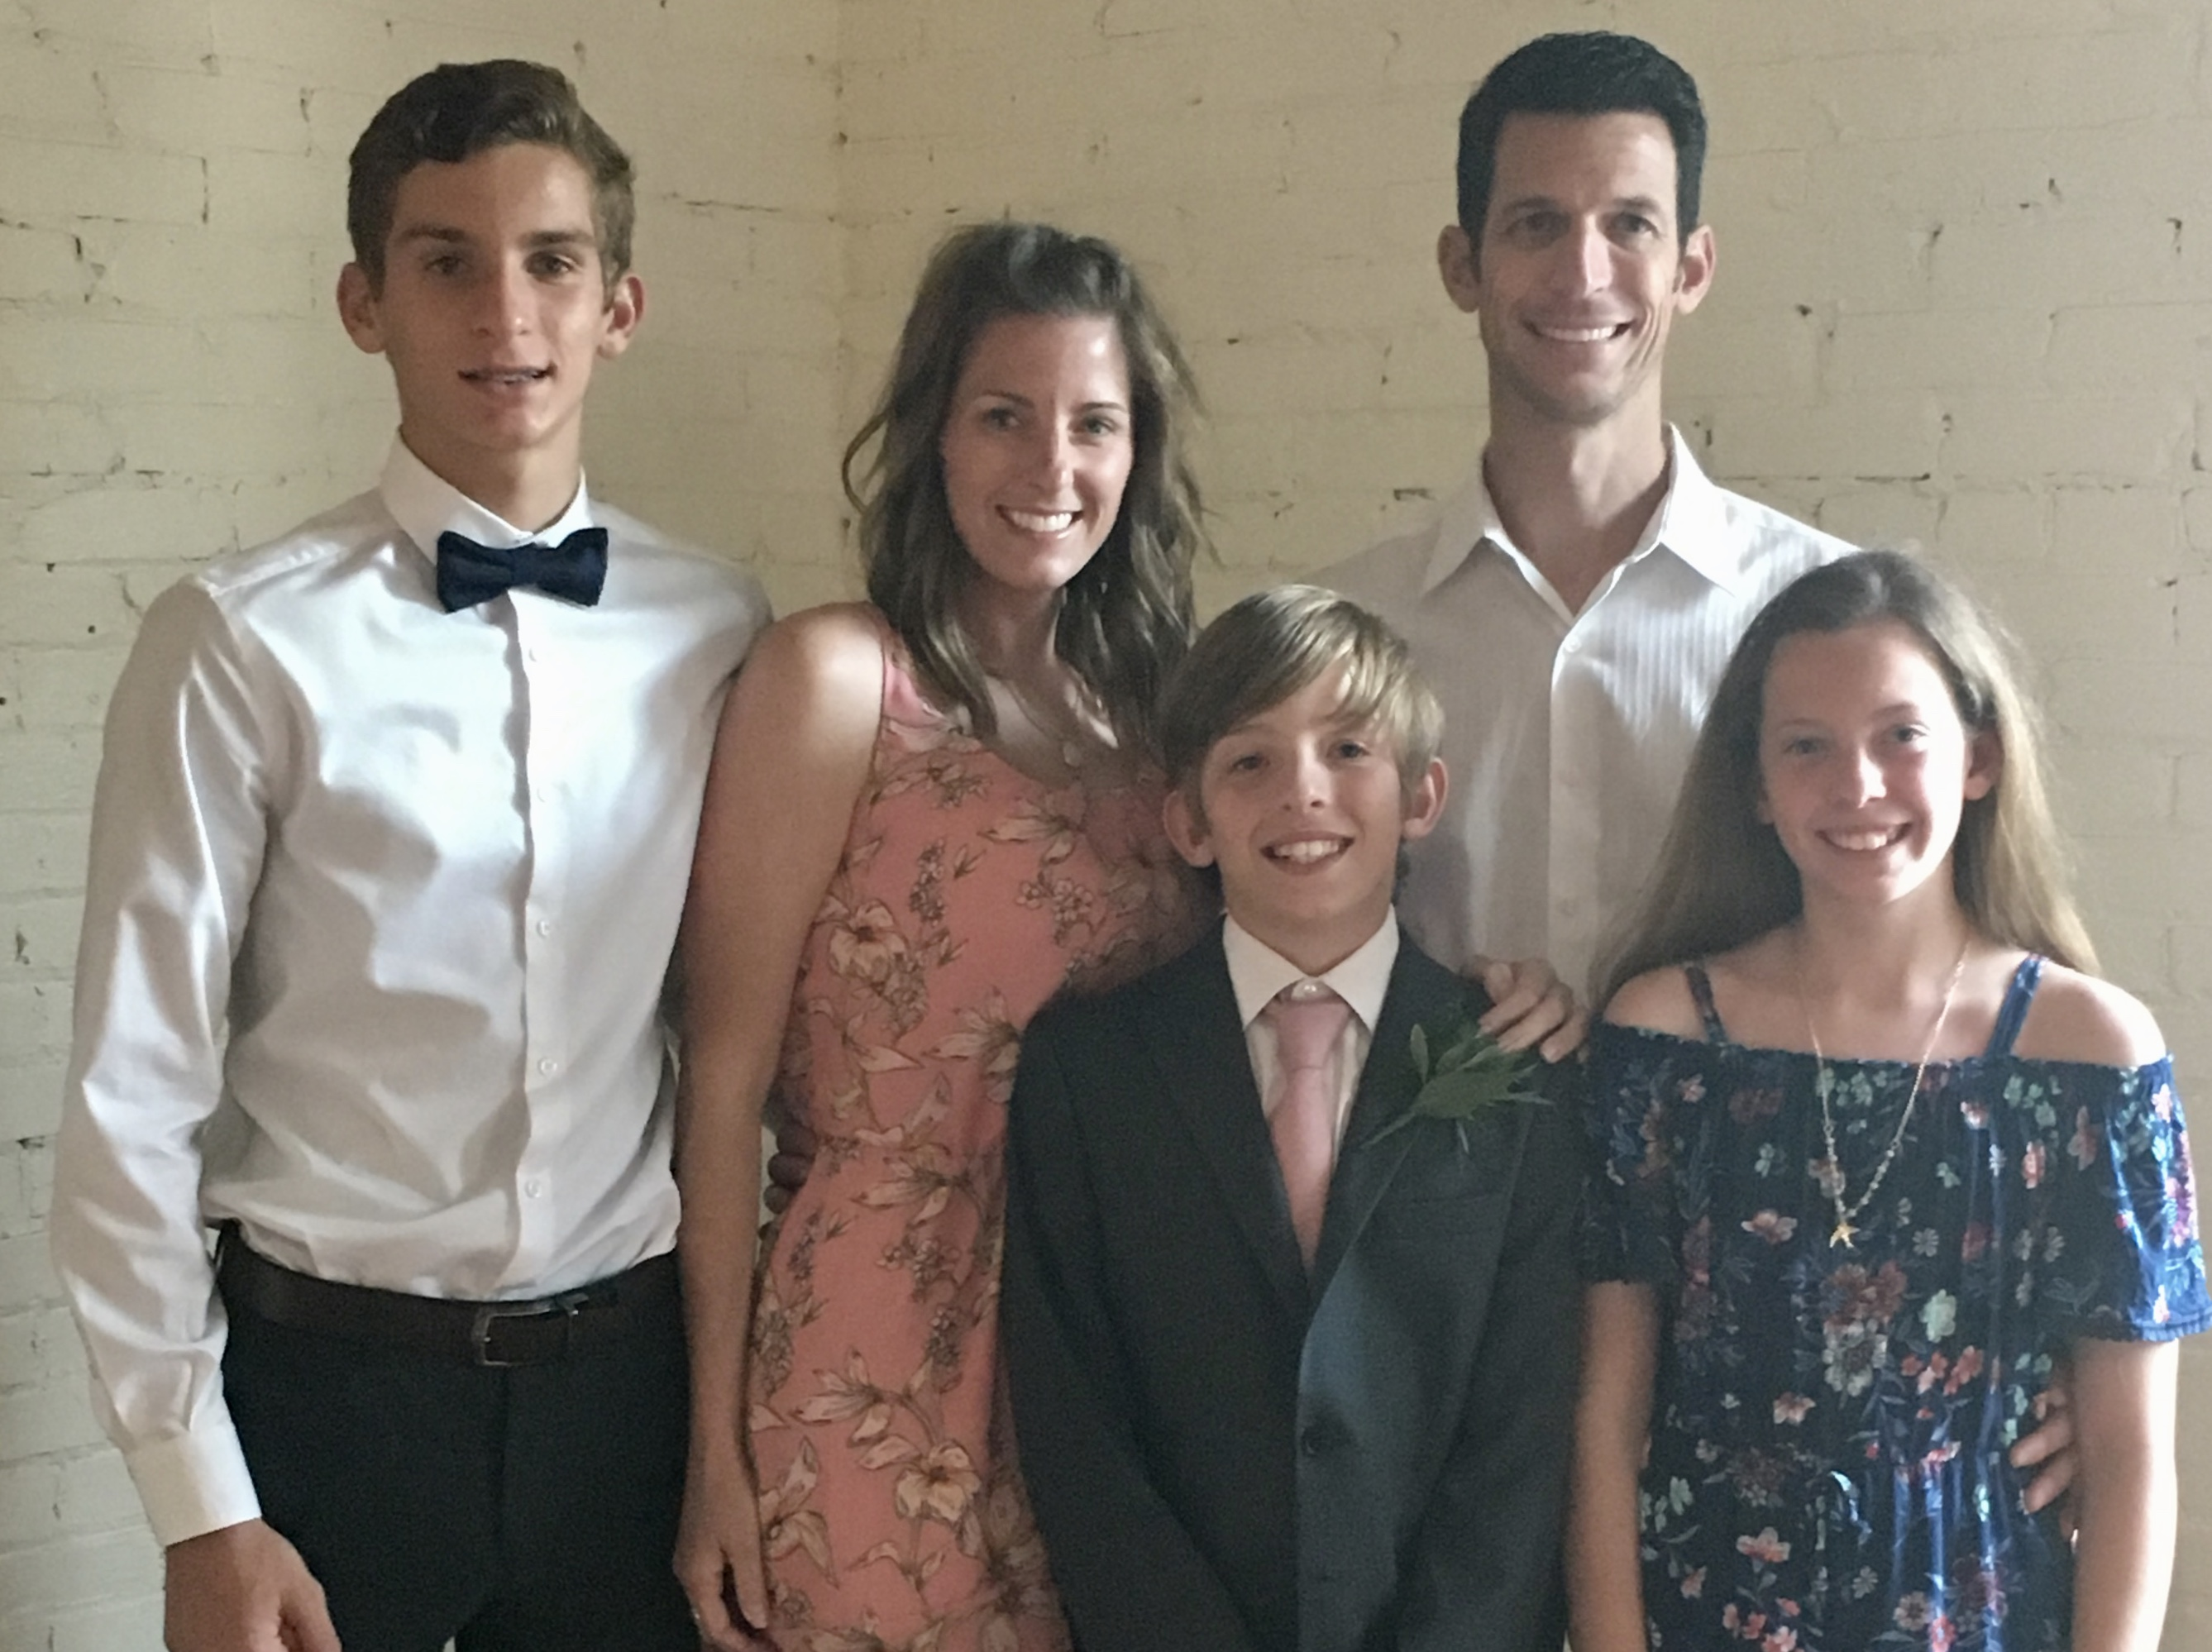 Collett Family Adoption is raising money on AdoptTogether for their adoption from China.